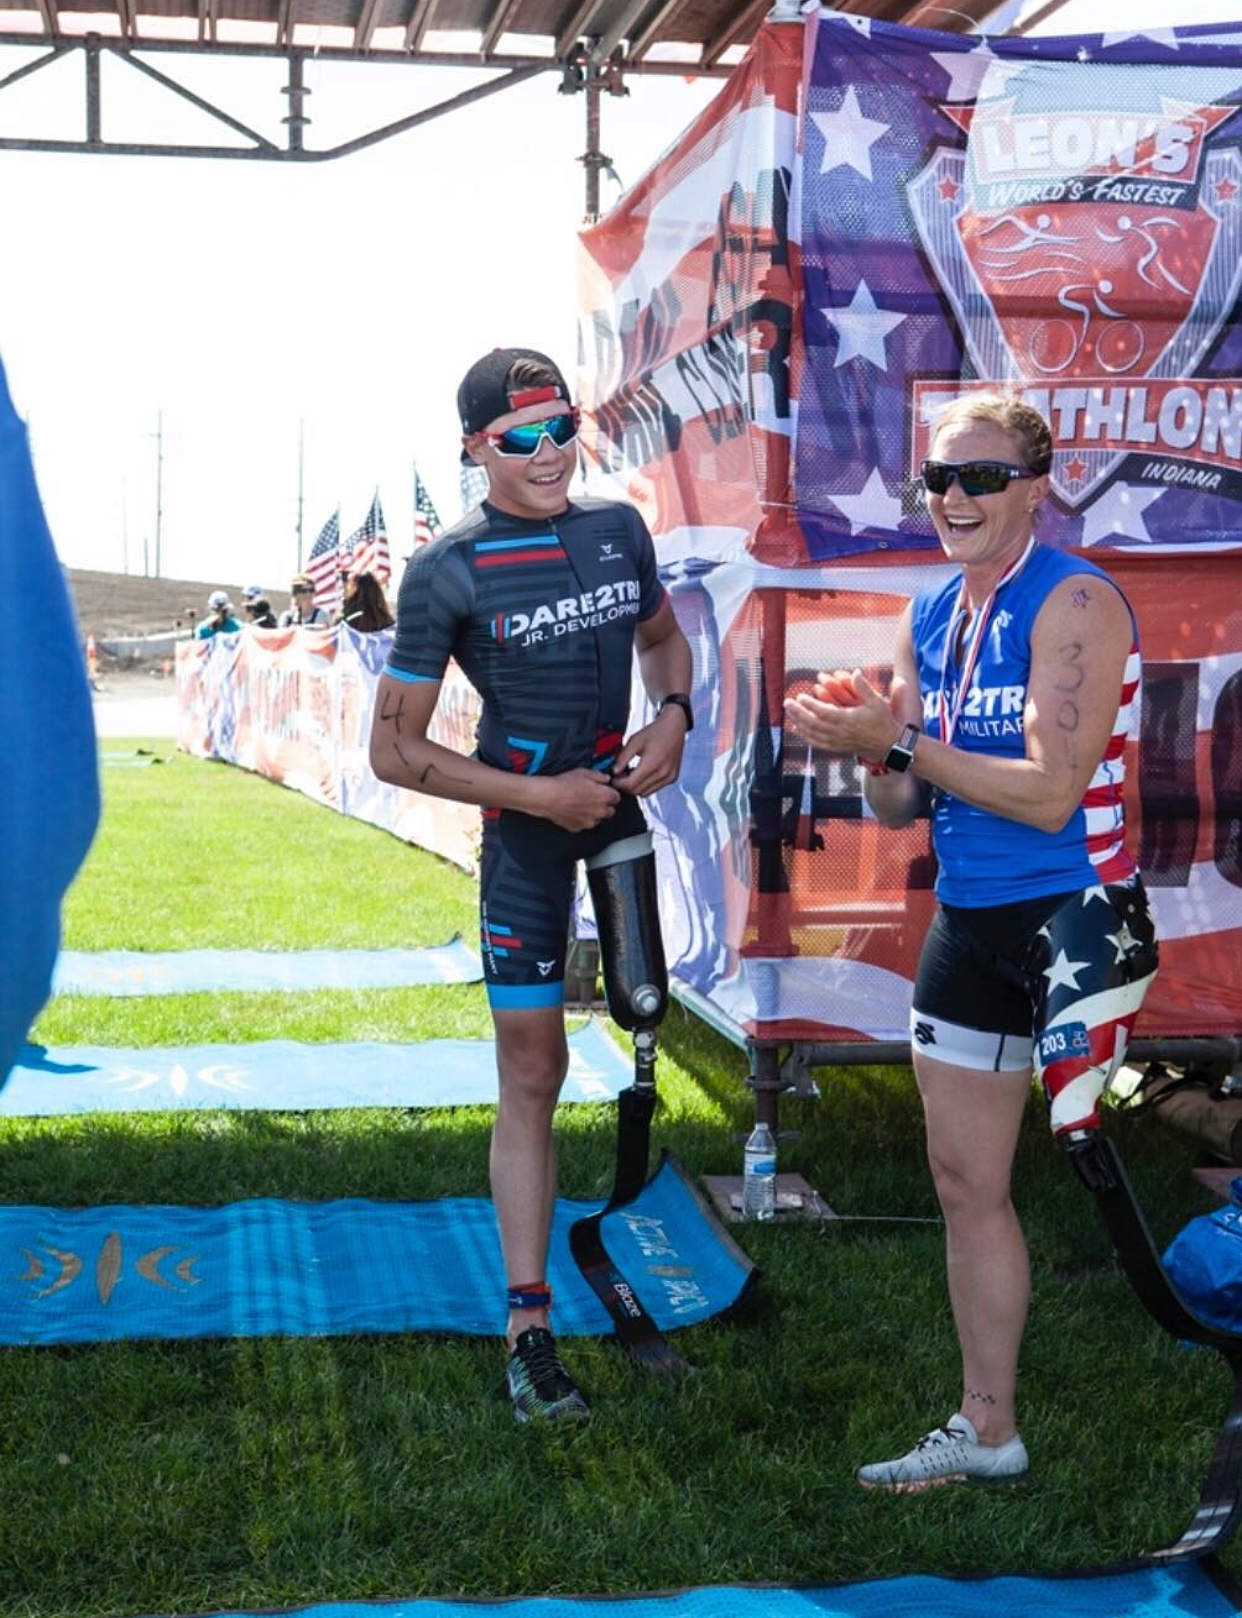 Disabled Youth Finds Future in Sport of Triathlon